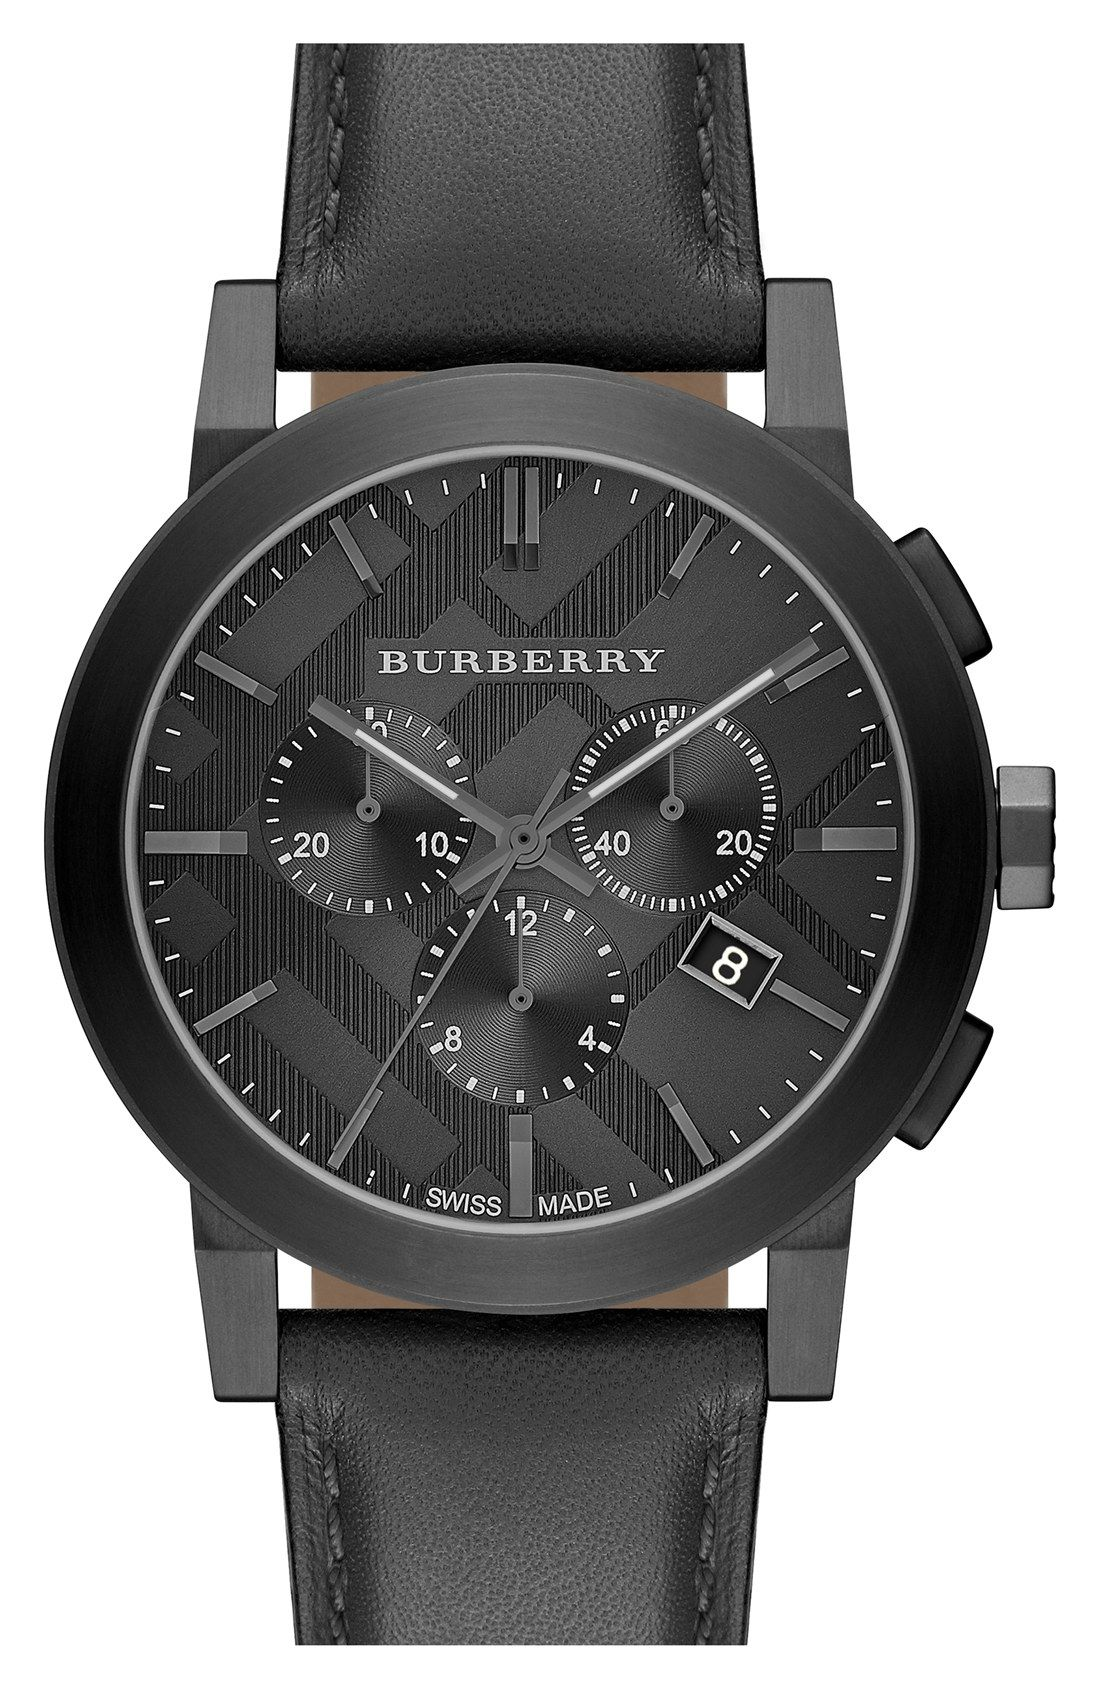 fe70e6fc544 Treating Dad to this rich leather Burberry watch for Father s Day ...